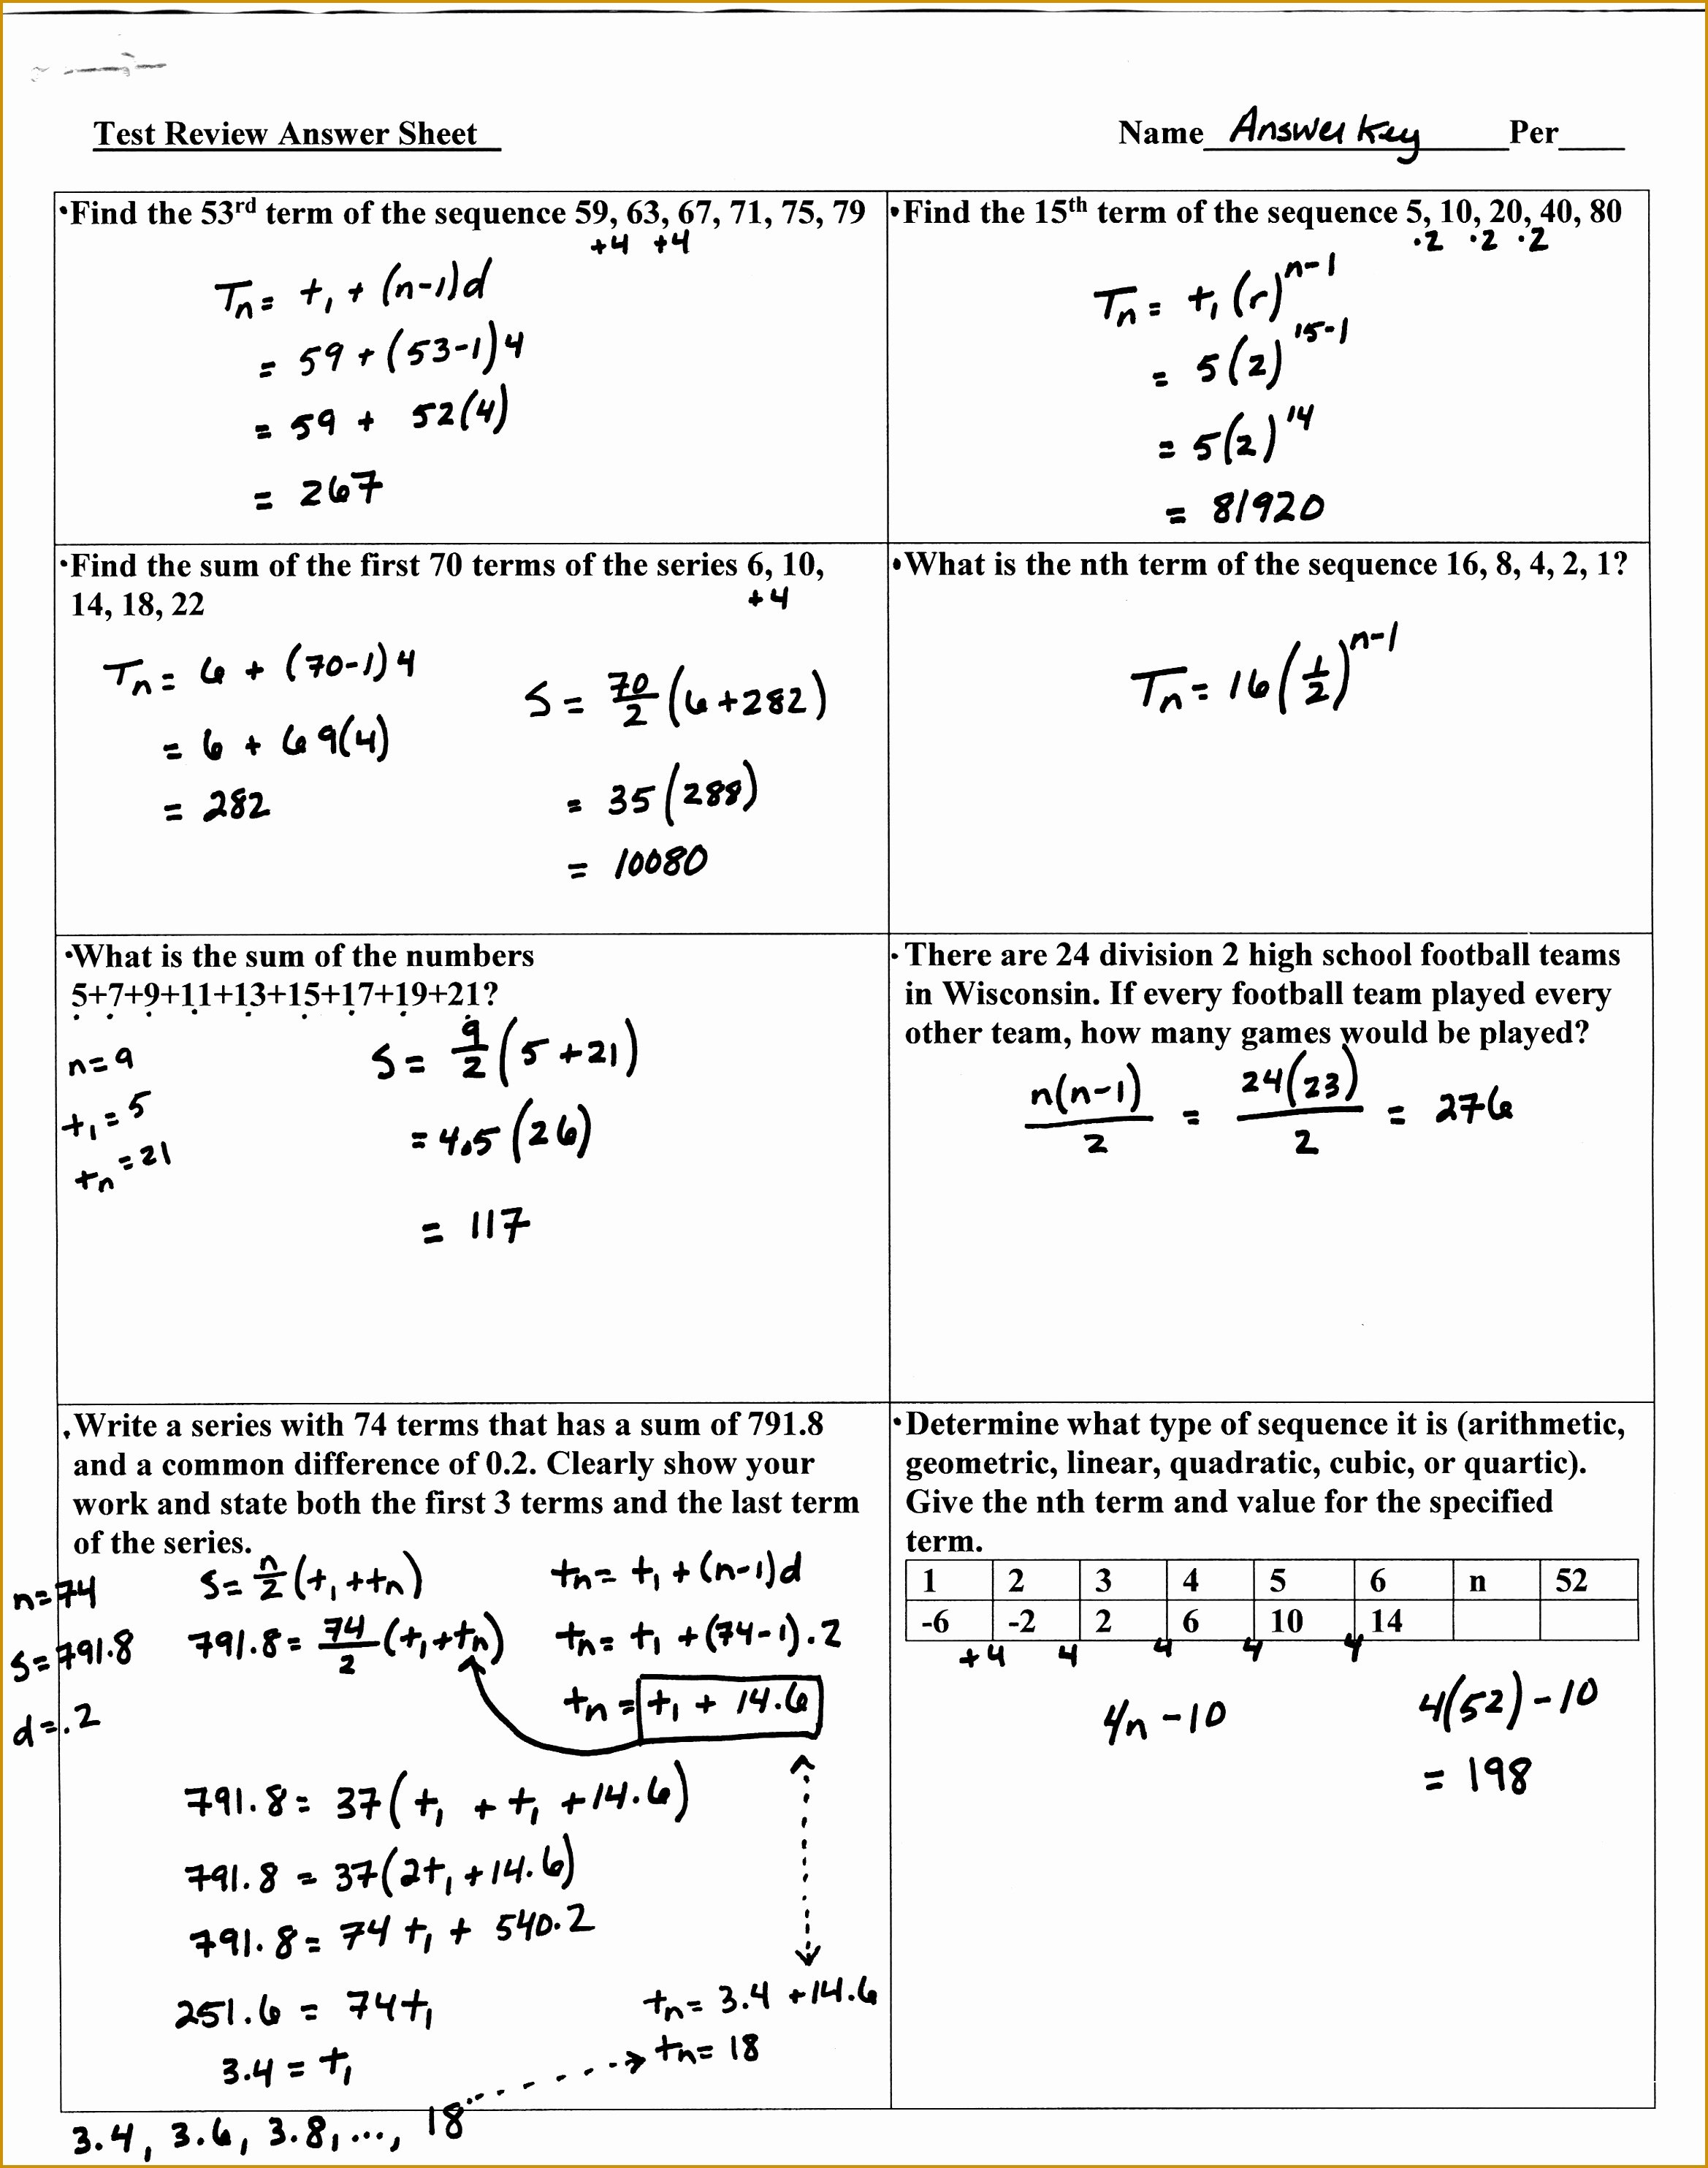 Algebra 1 Function Notation Worksheet Lovely 3 Algebra 1 Function Notation Worksheet